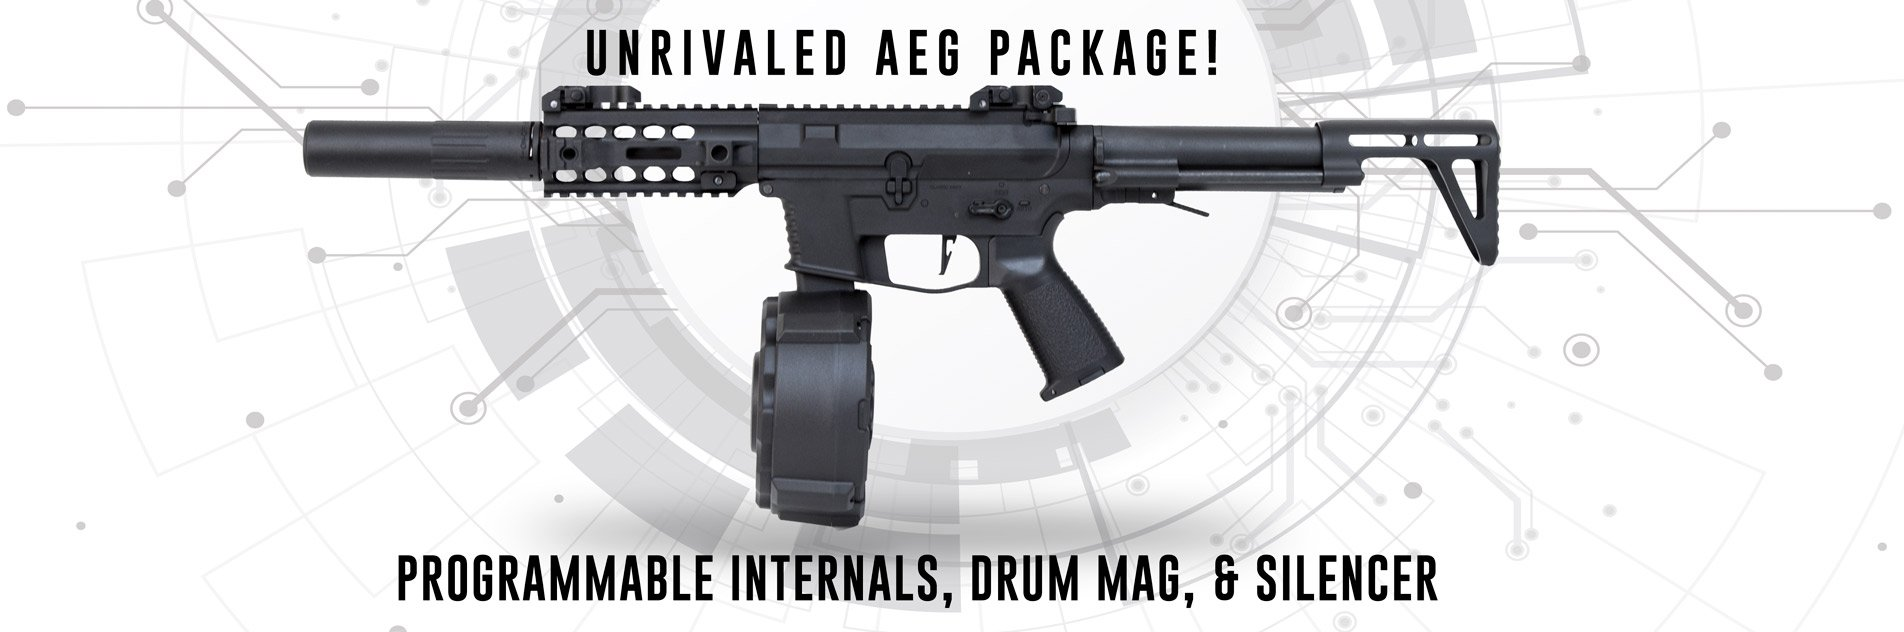 Classic Army PXG 9 AEG Airsoft SMG w/ Auto Drum Mock Silencer Package